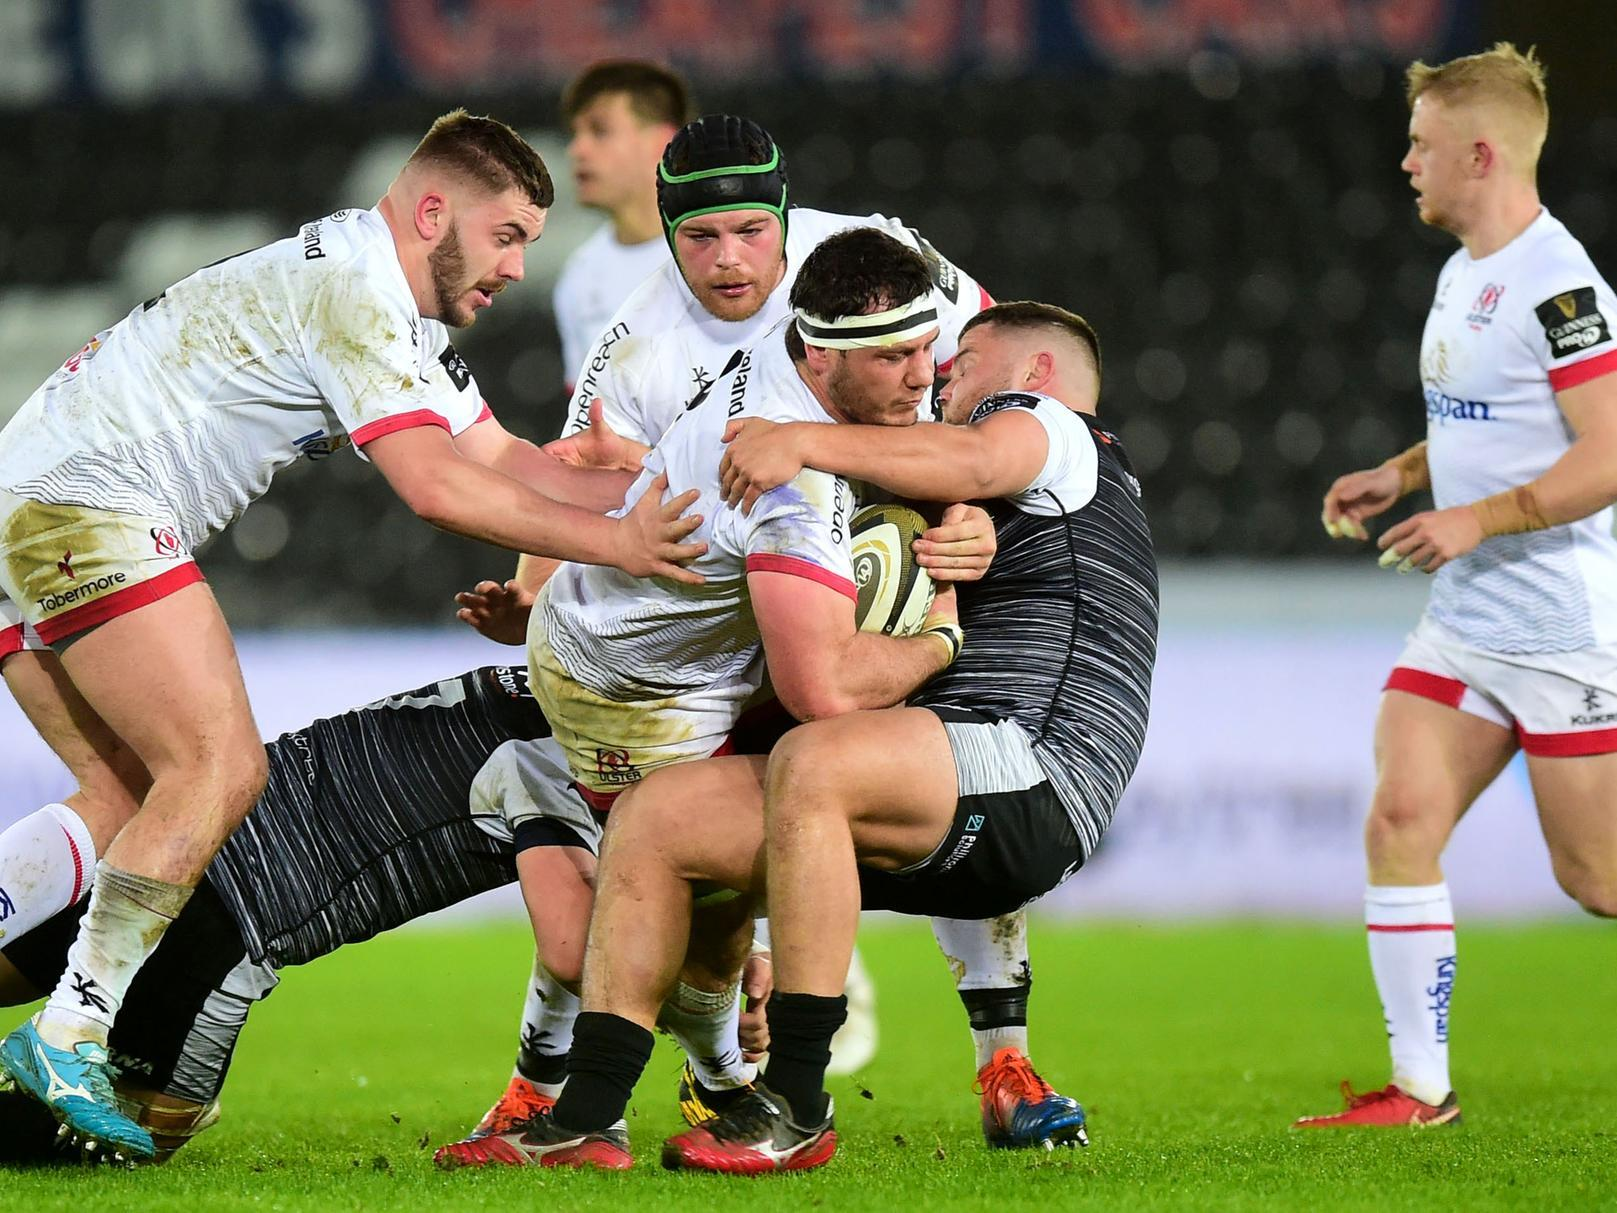 Ulster suffer narrow Guinness PRO14 loss to Ospreys in stormy Swansea.